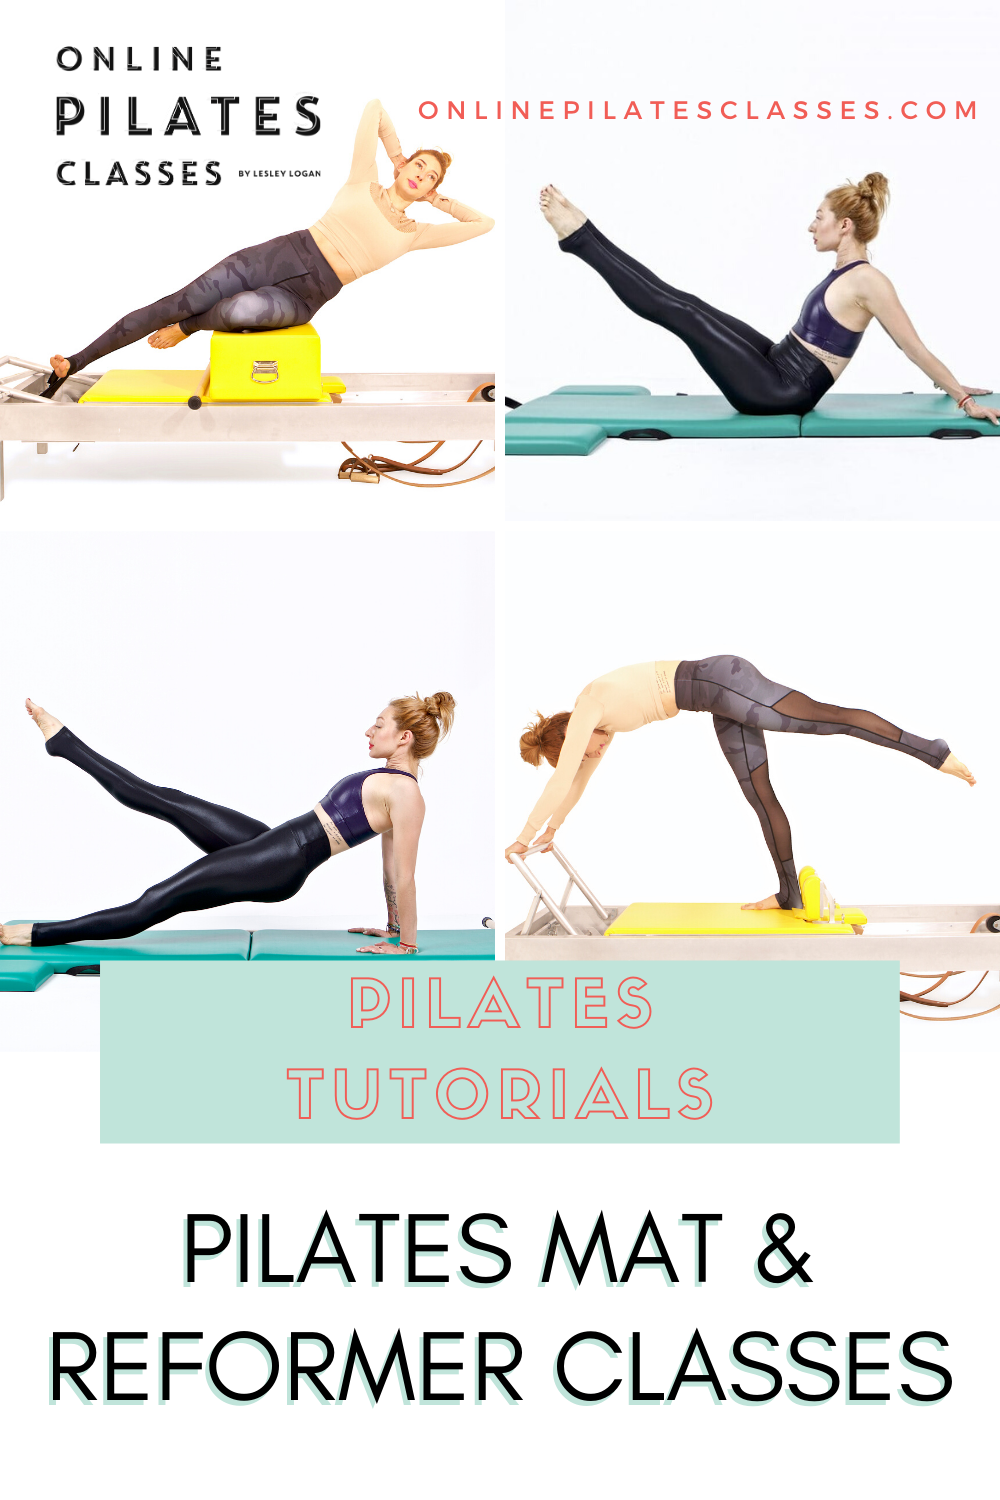 Pilates Mat Reformer Classes It S All In The Transitions Online Pilates Classes In 2020 Online Pilates Pilates Workout